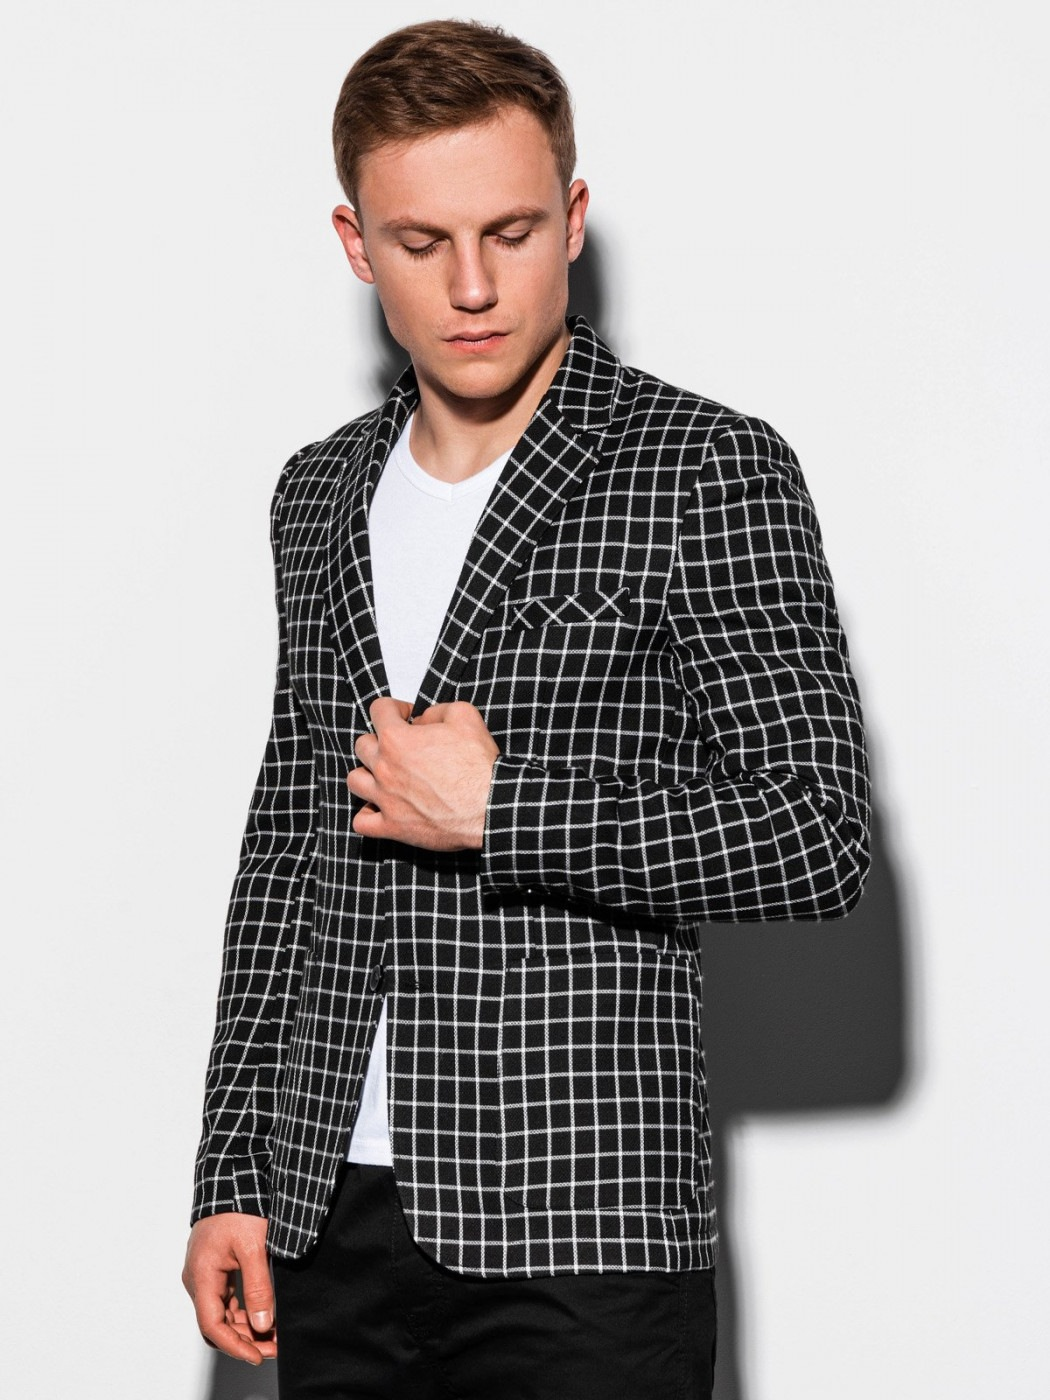 Ombre Clothing Men's casual blazer jacket M161